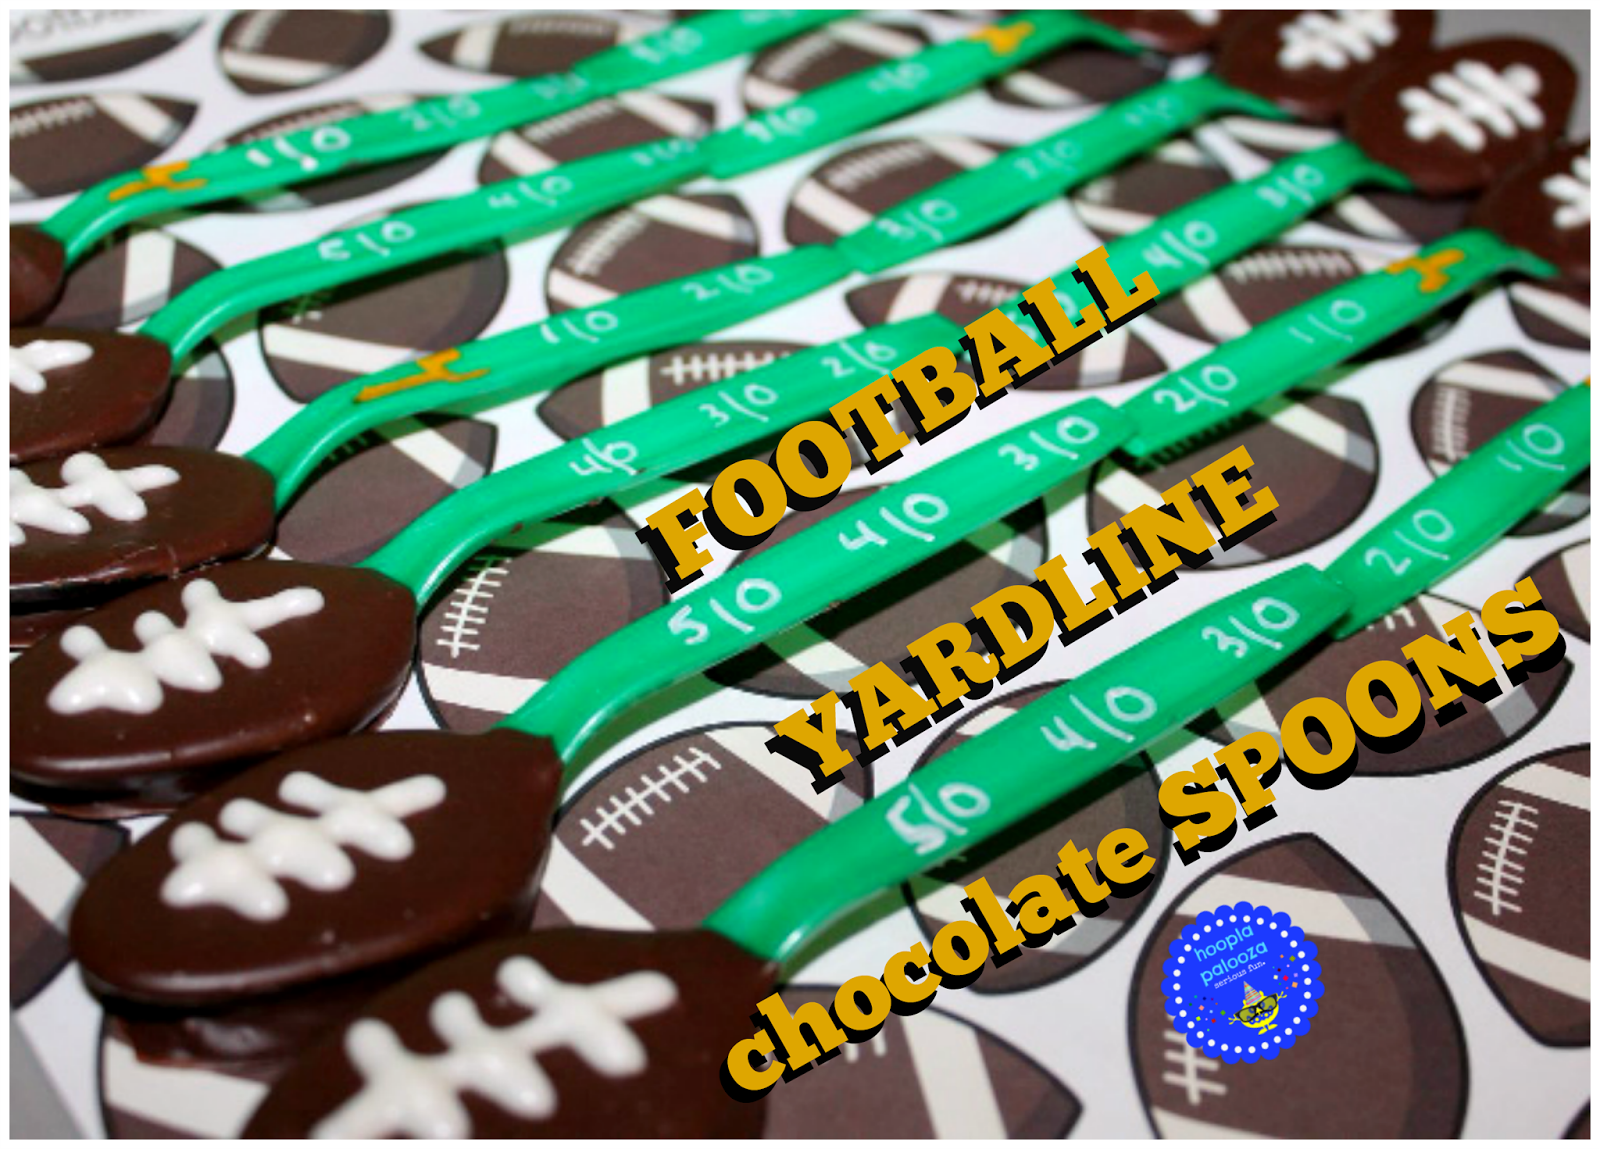 Football Yardline Chocolate Spoons from Hoopla Palooza